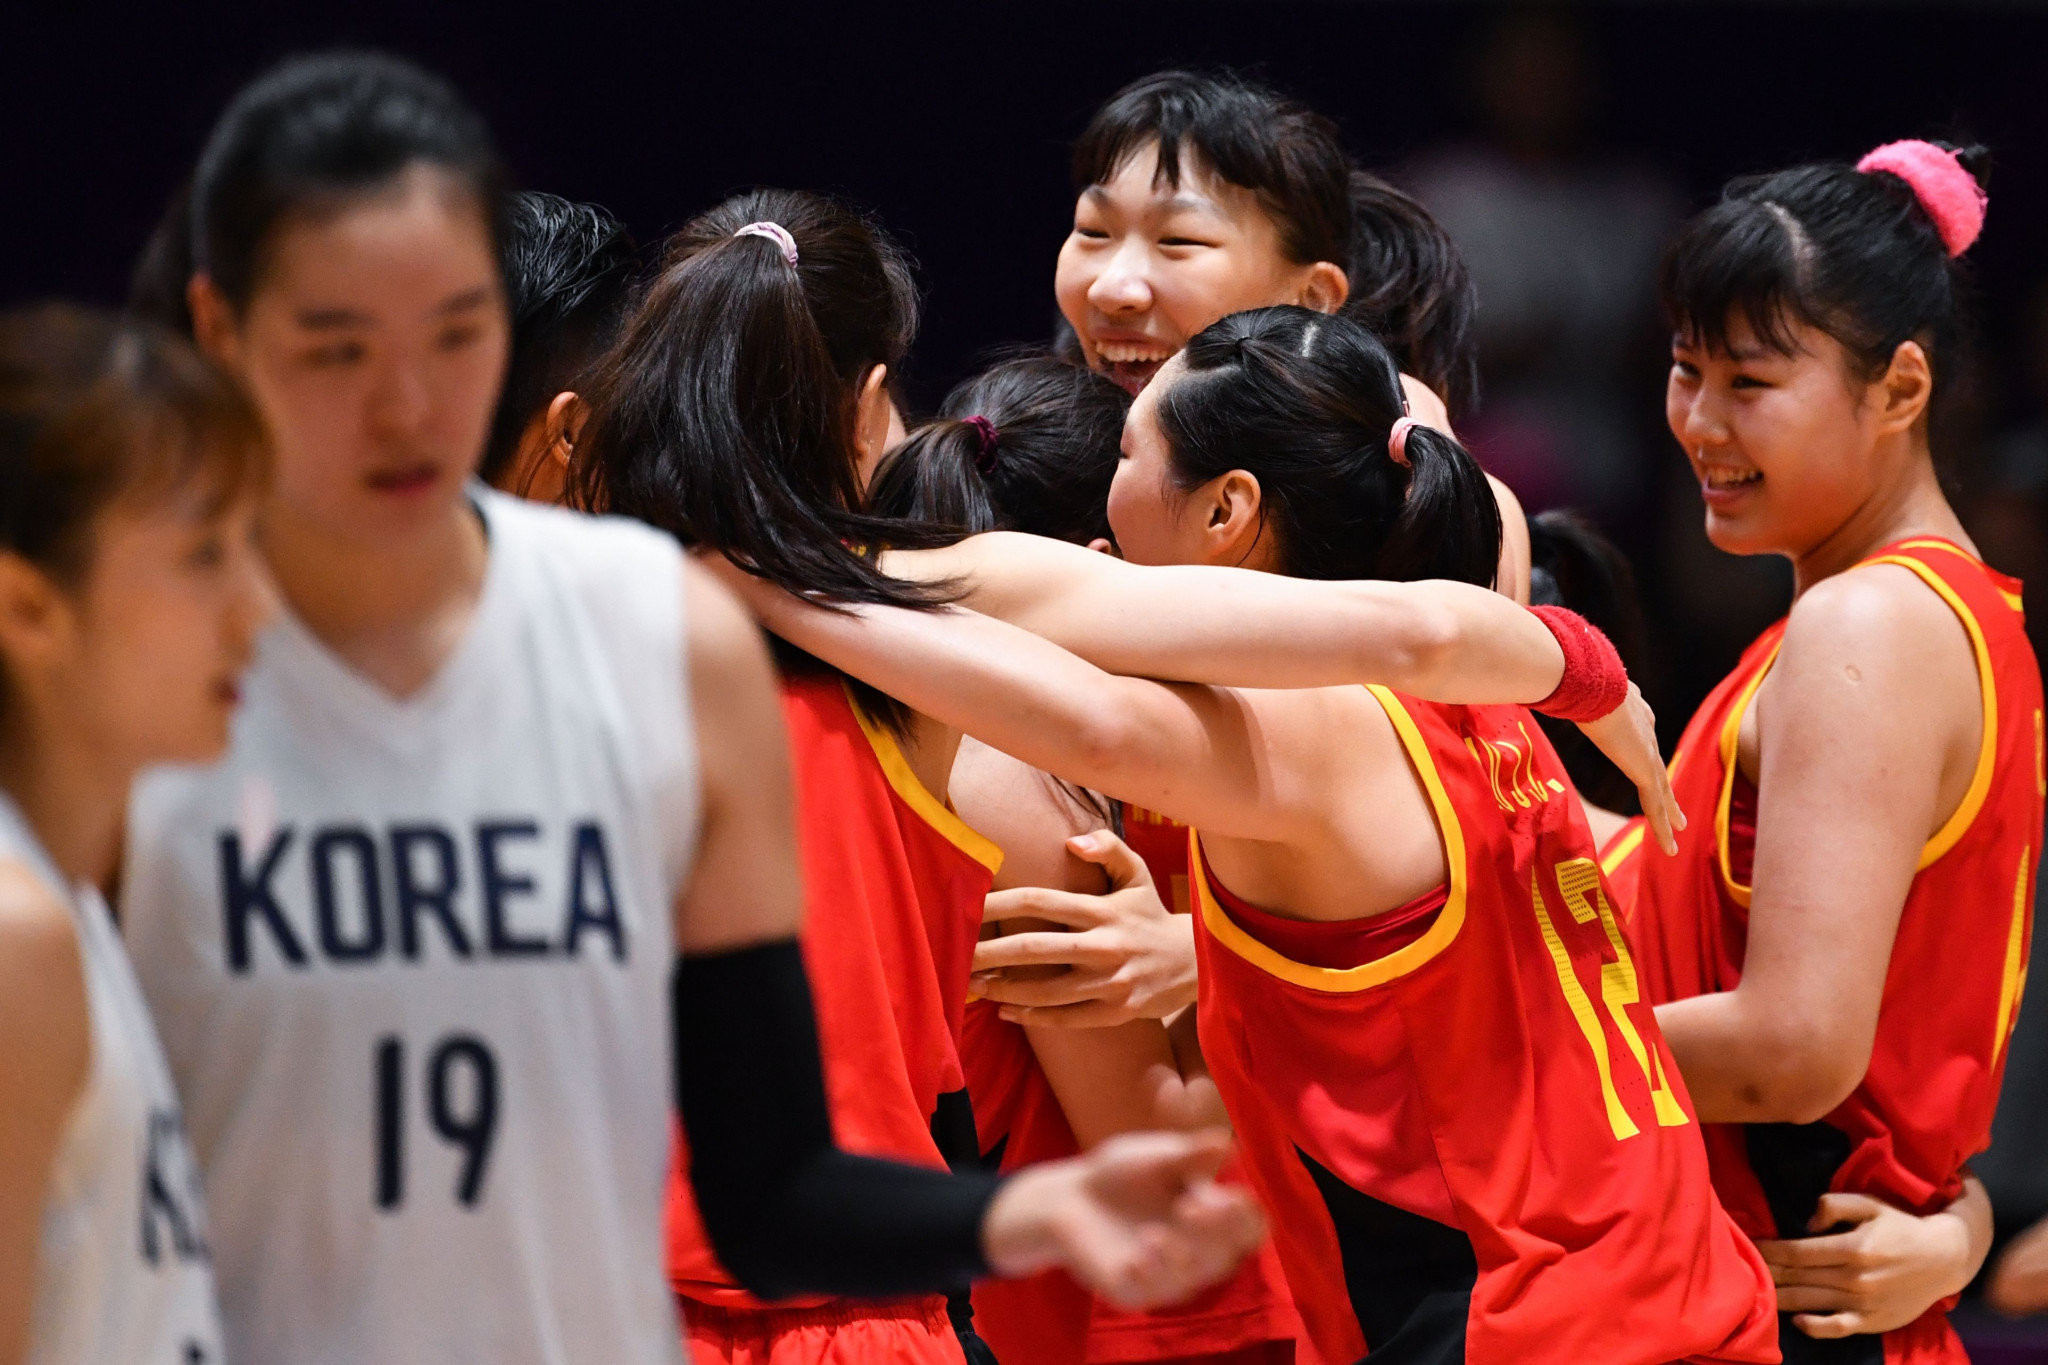 Unified Korean team miss out on women's gold medal as China claim basketball 5x5 double at 2018 Asian Games